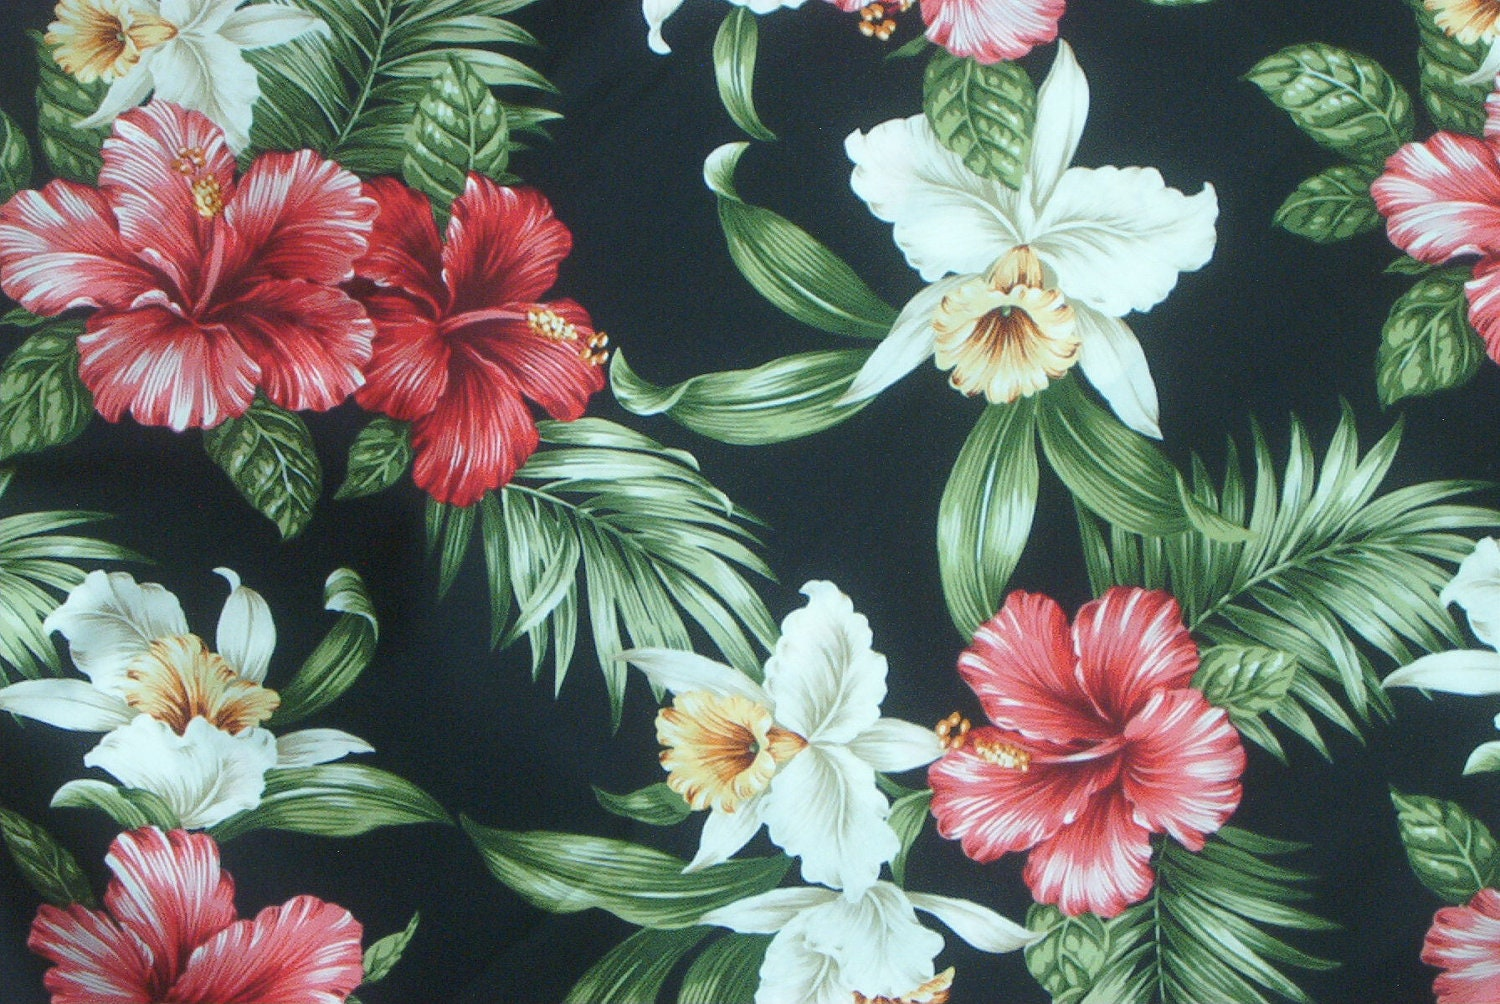 Marianne Of Maui Hawaiian Quilting Fabric Bluish Black With